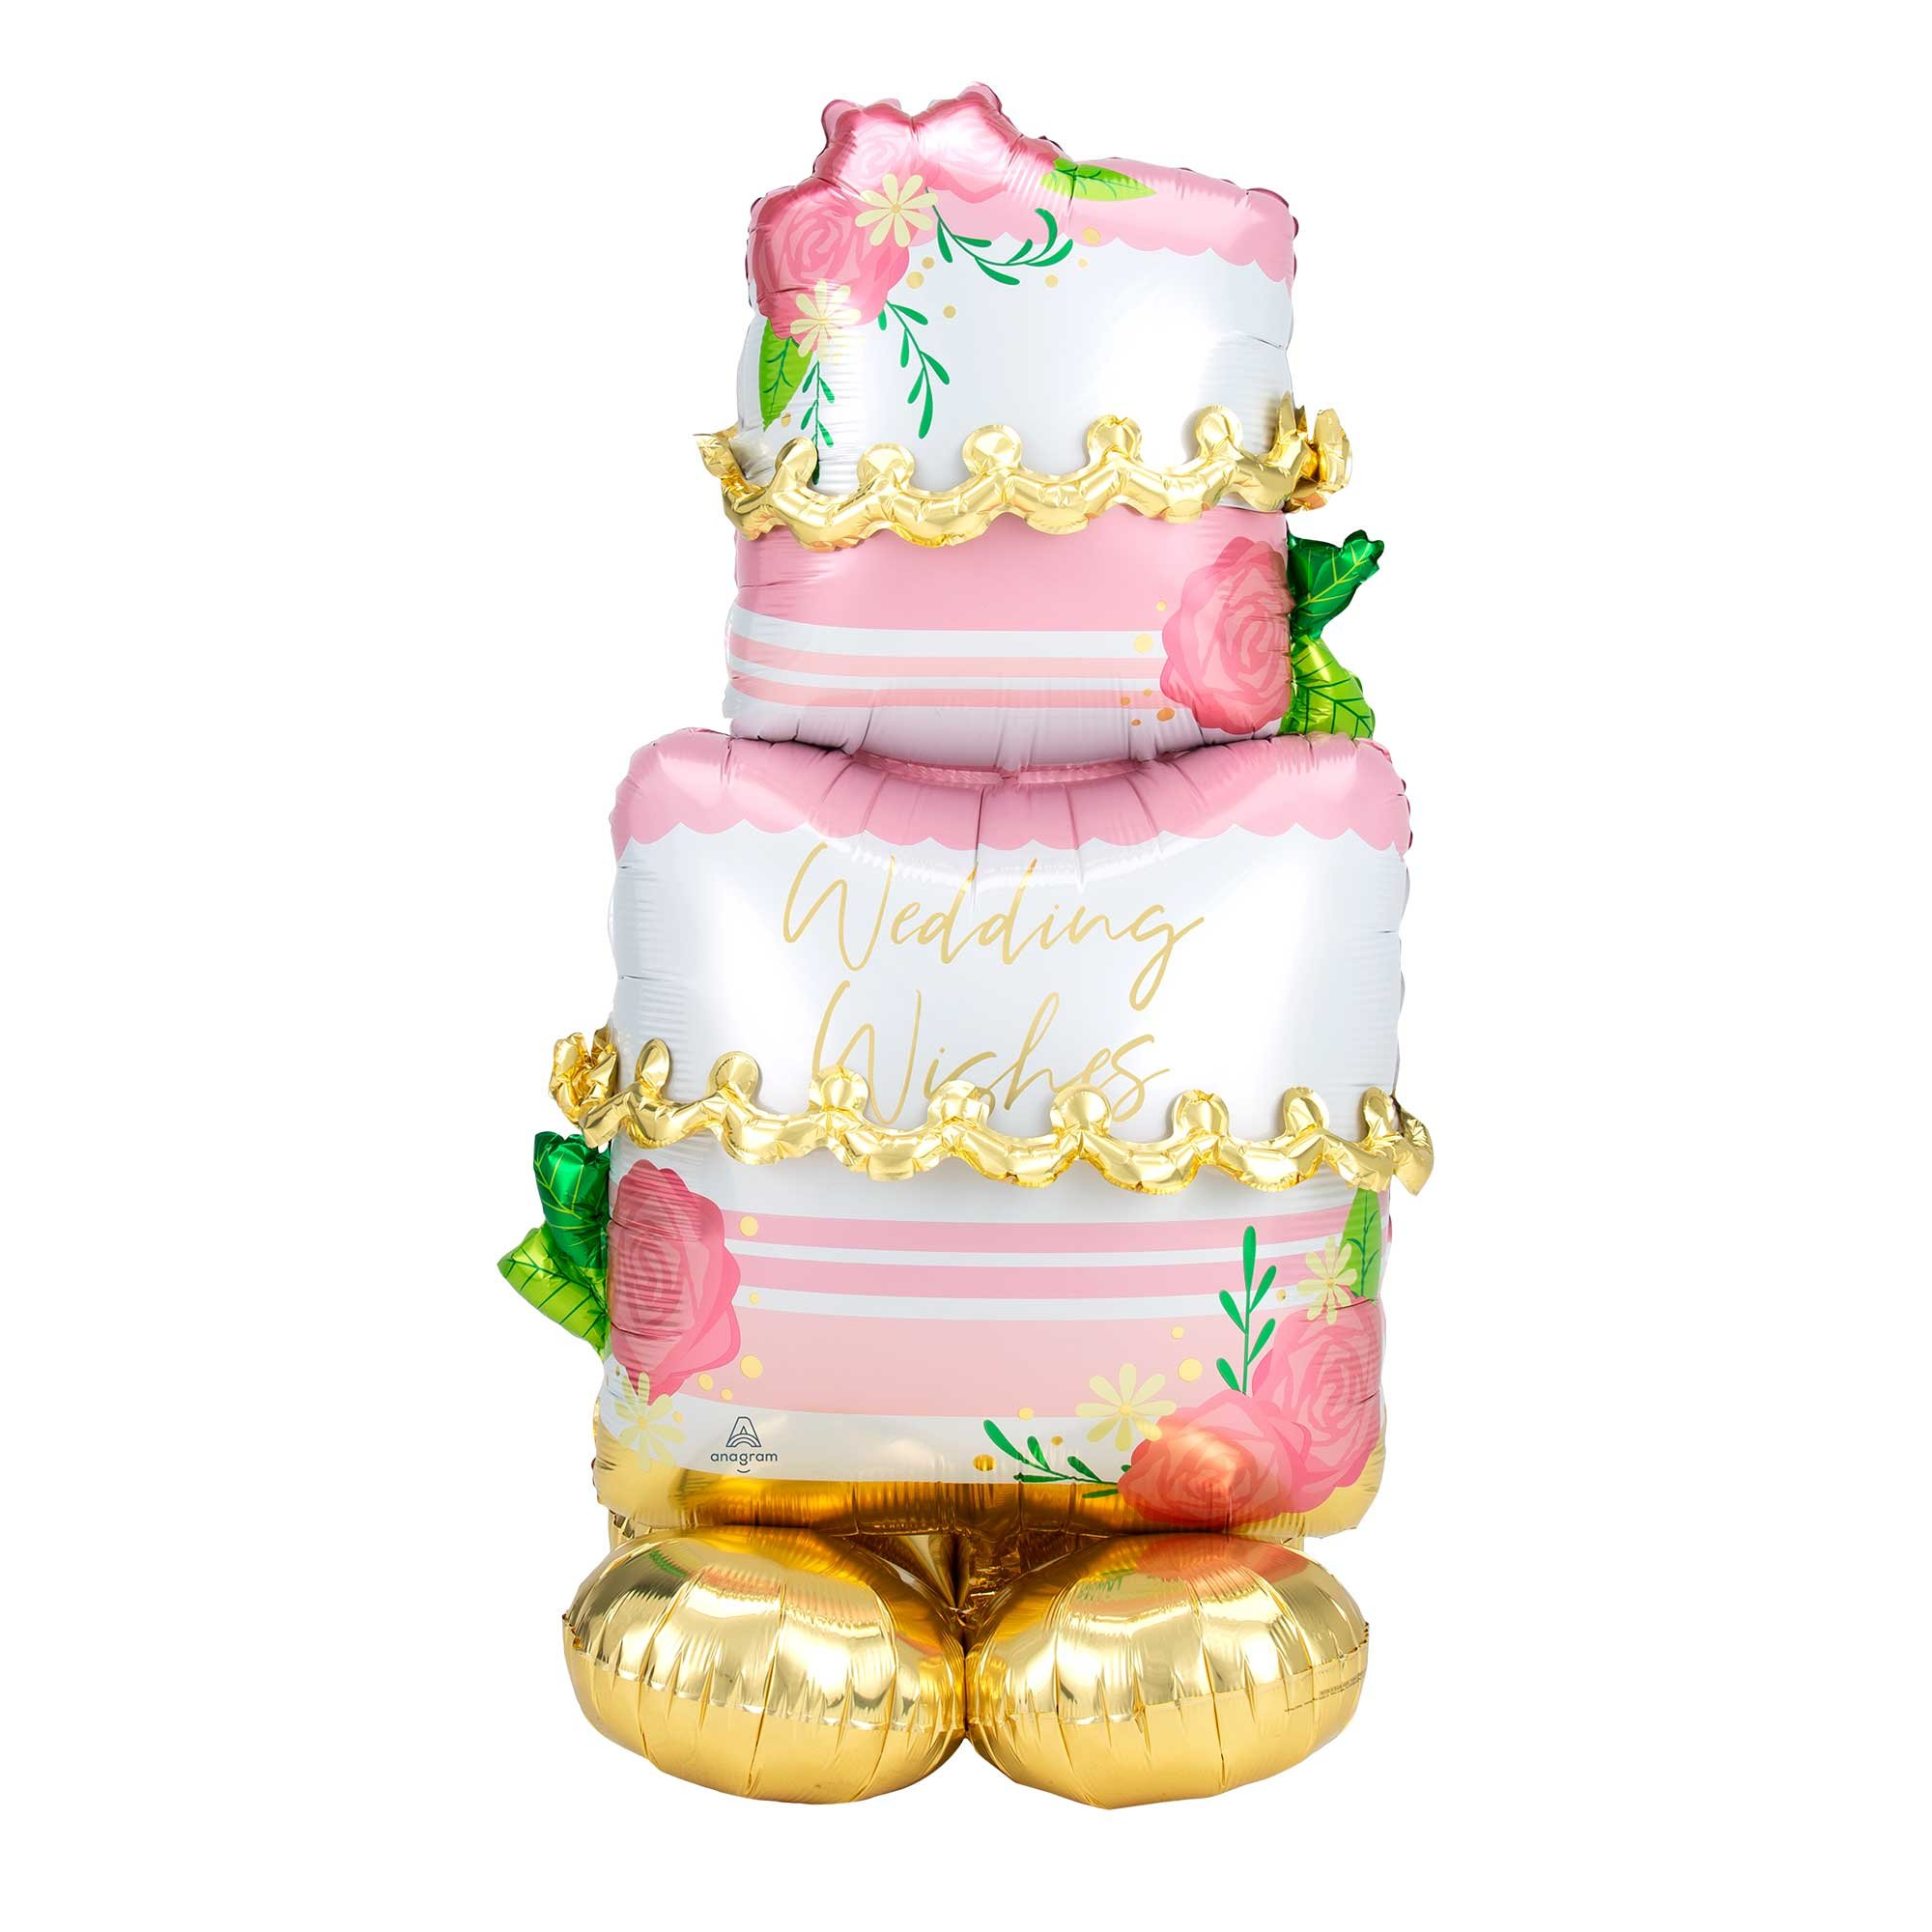 CI: AirLoonz Wedding Wishes Cake P70